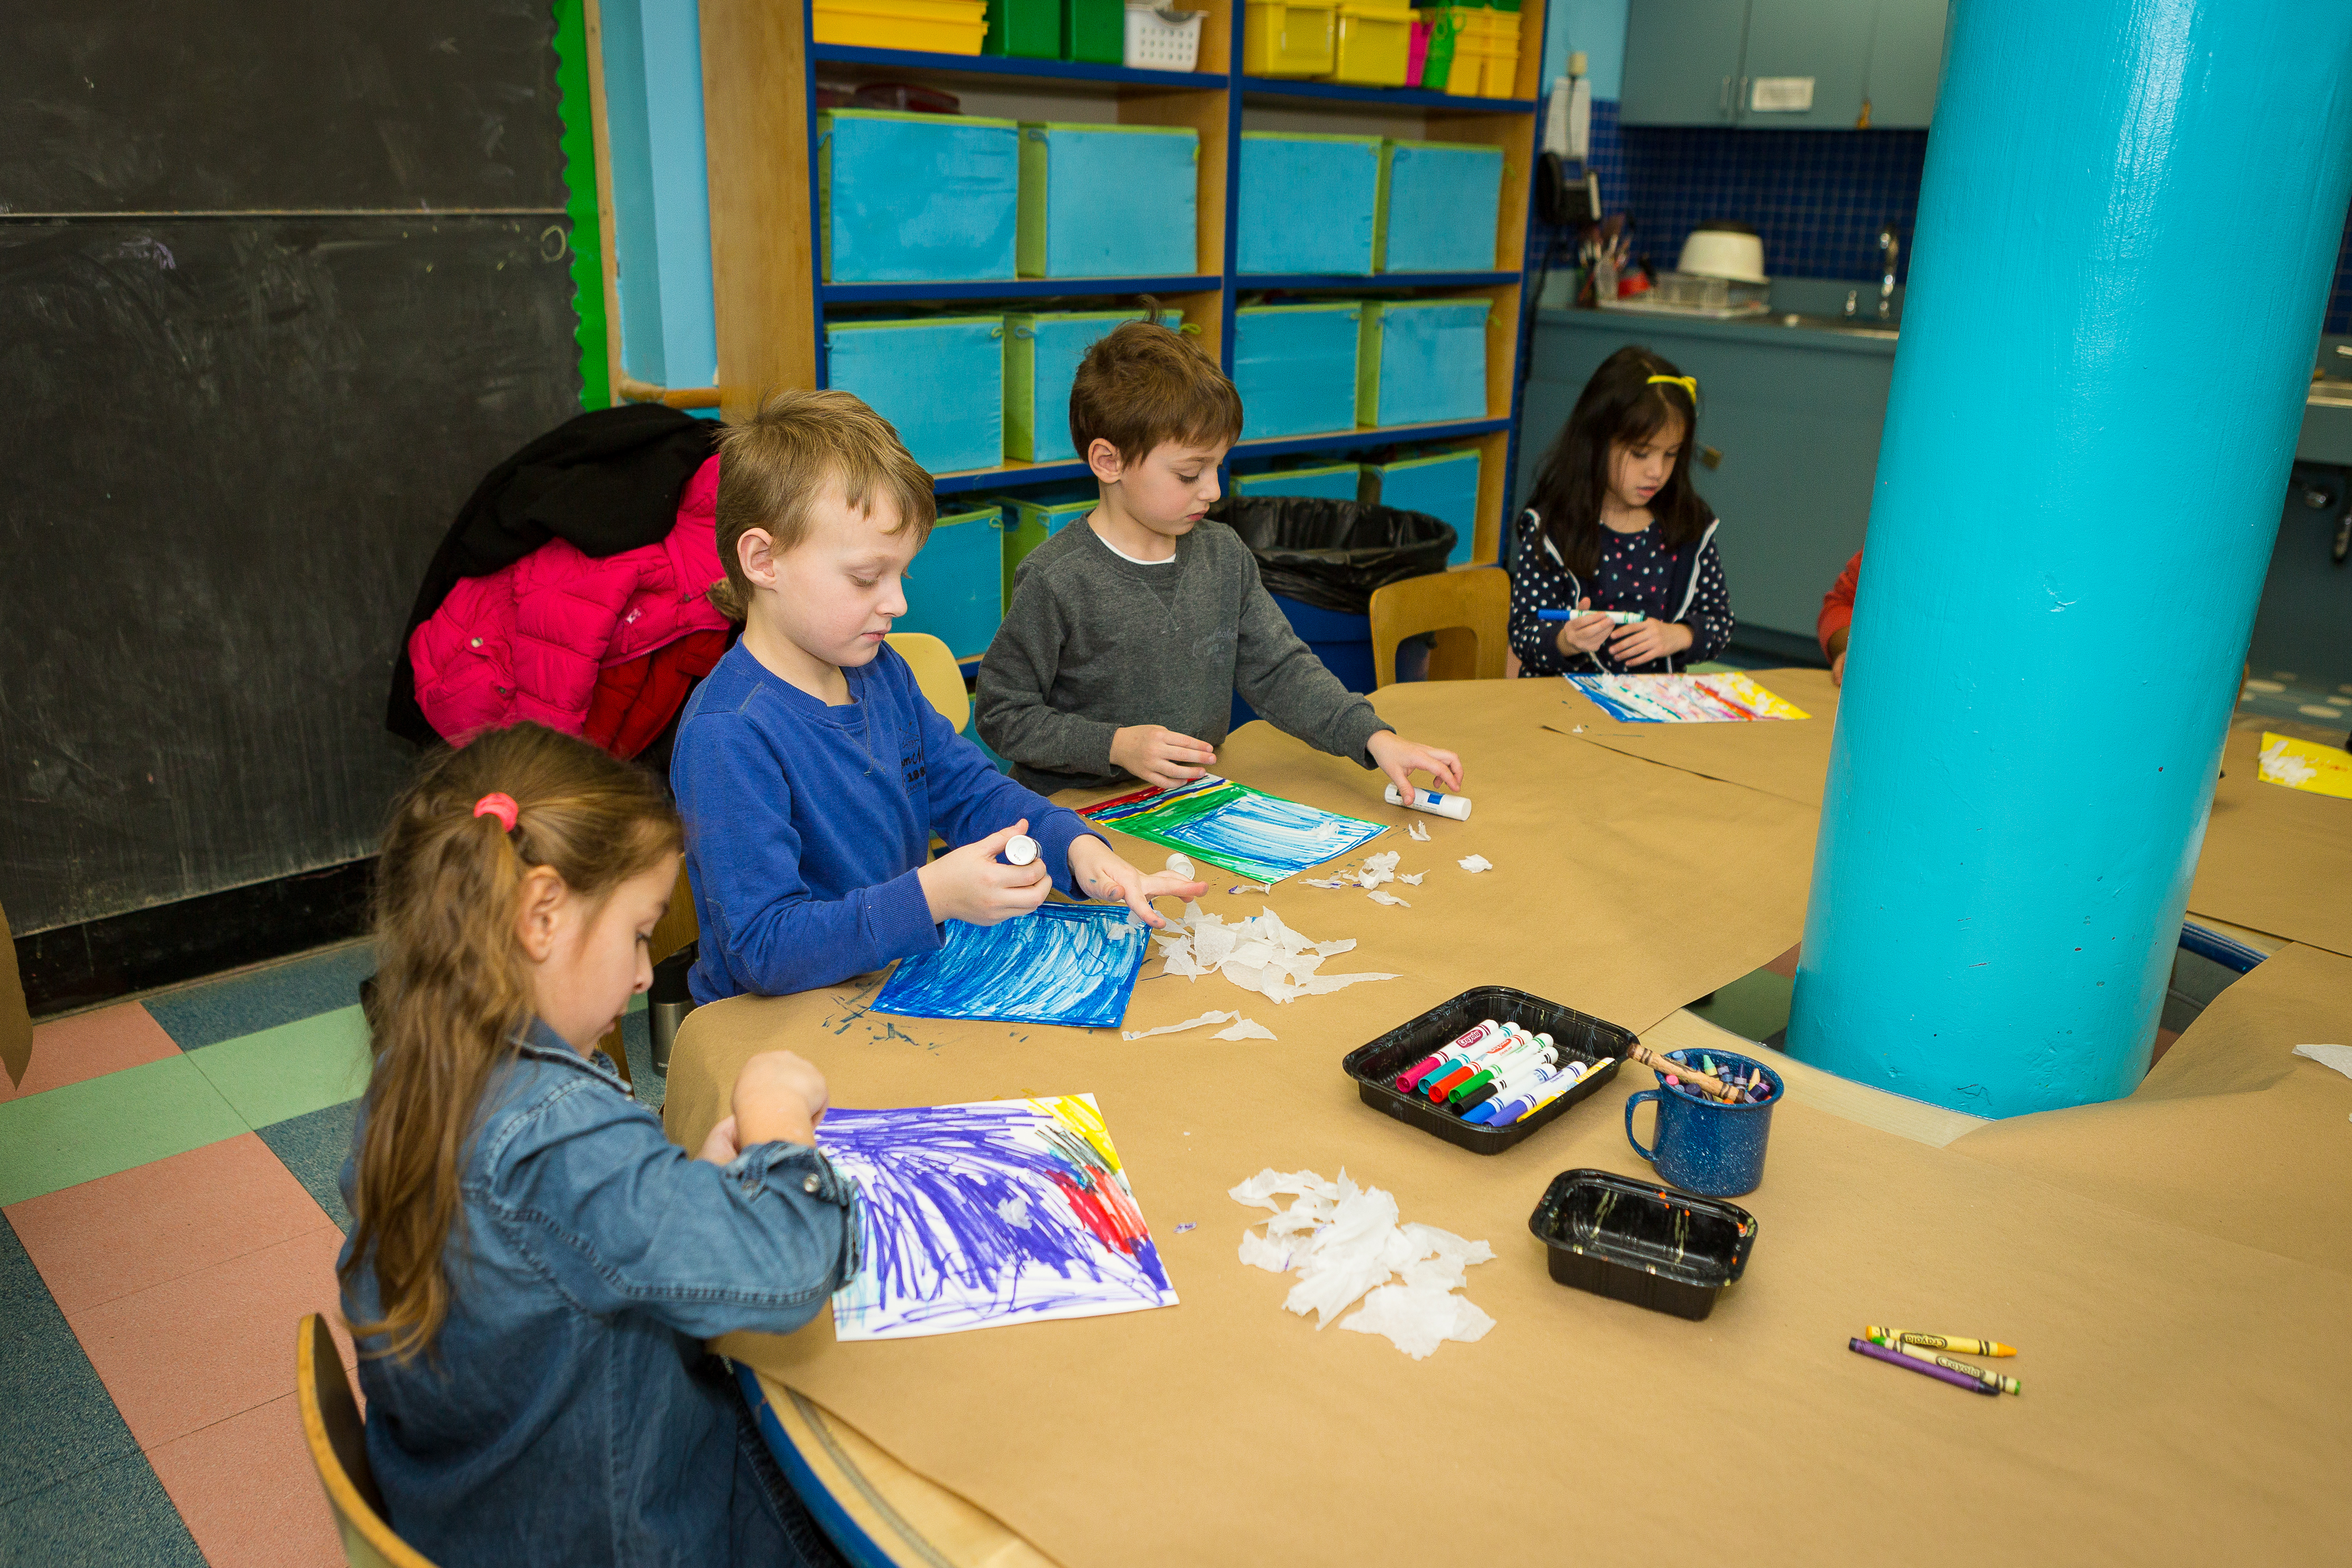 Staten Island Children's Museum: Cool School Holiday – Columbus Day Observed